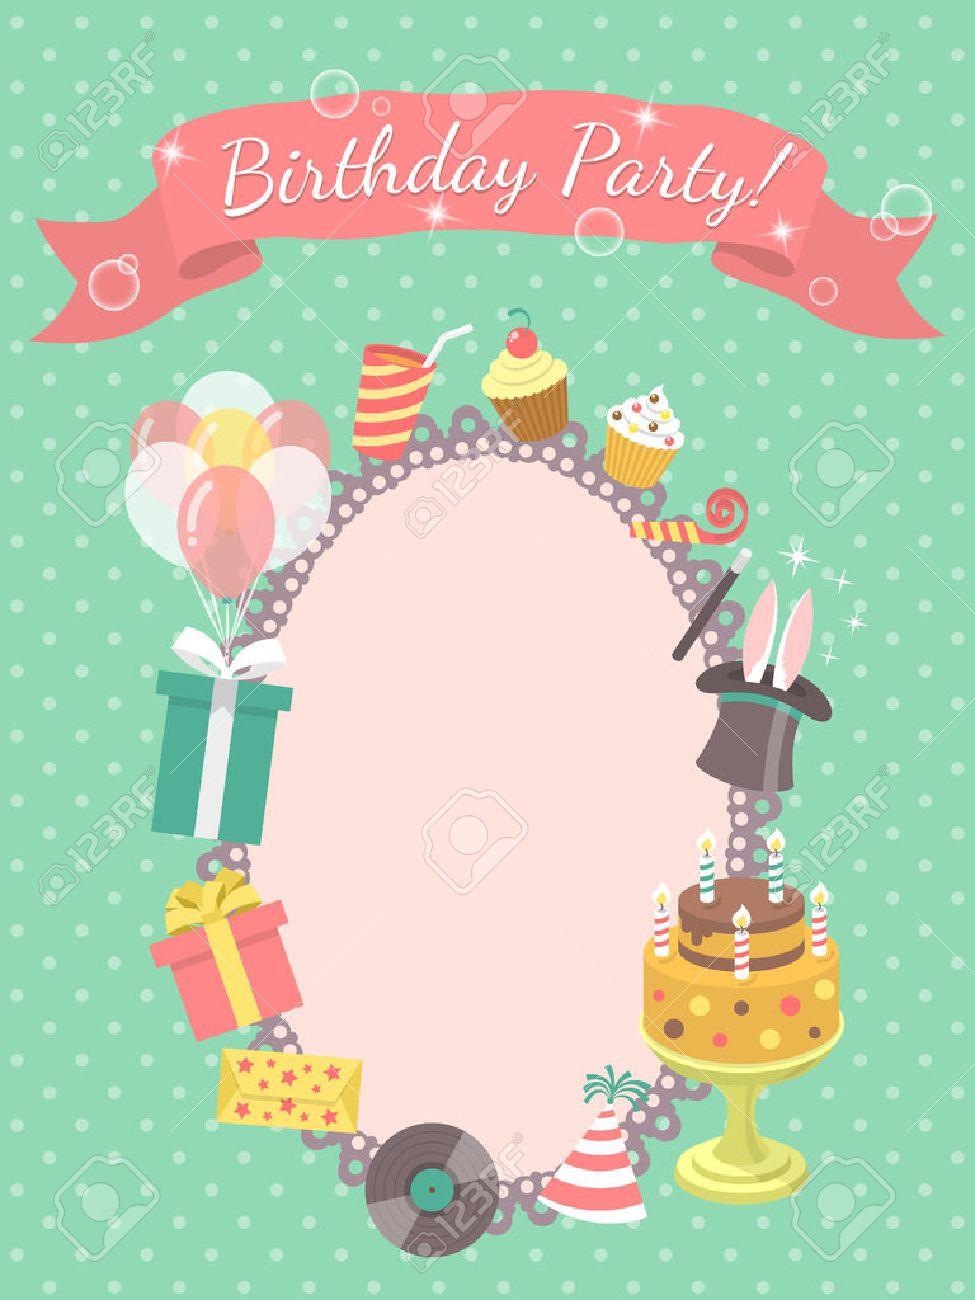 birthday party invitation clipart ; 33005084-modern-flat-birthday-party-invitation-card-with-birthday-symbols-such-as-gifts-balloons-birthday-cak-Stock-Photo